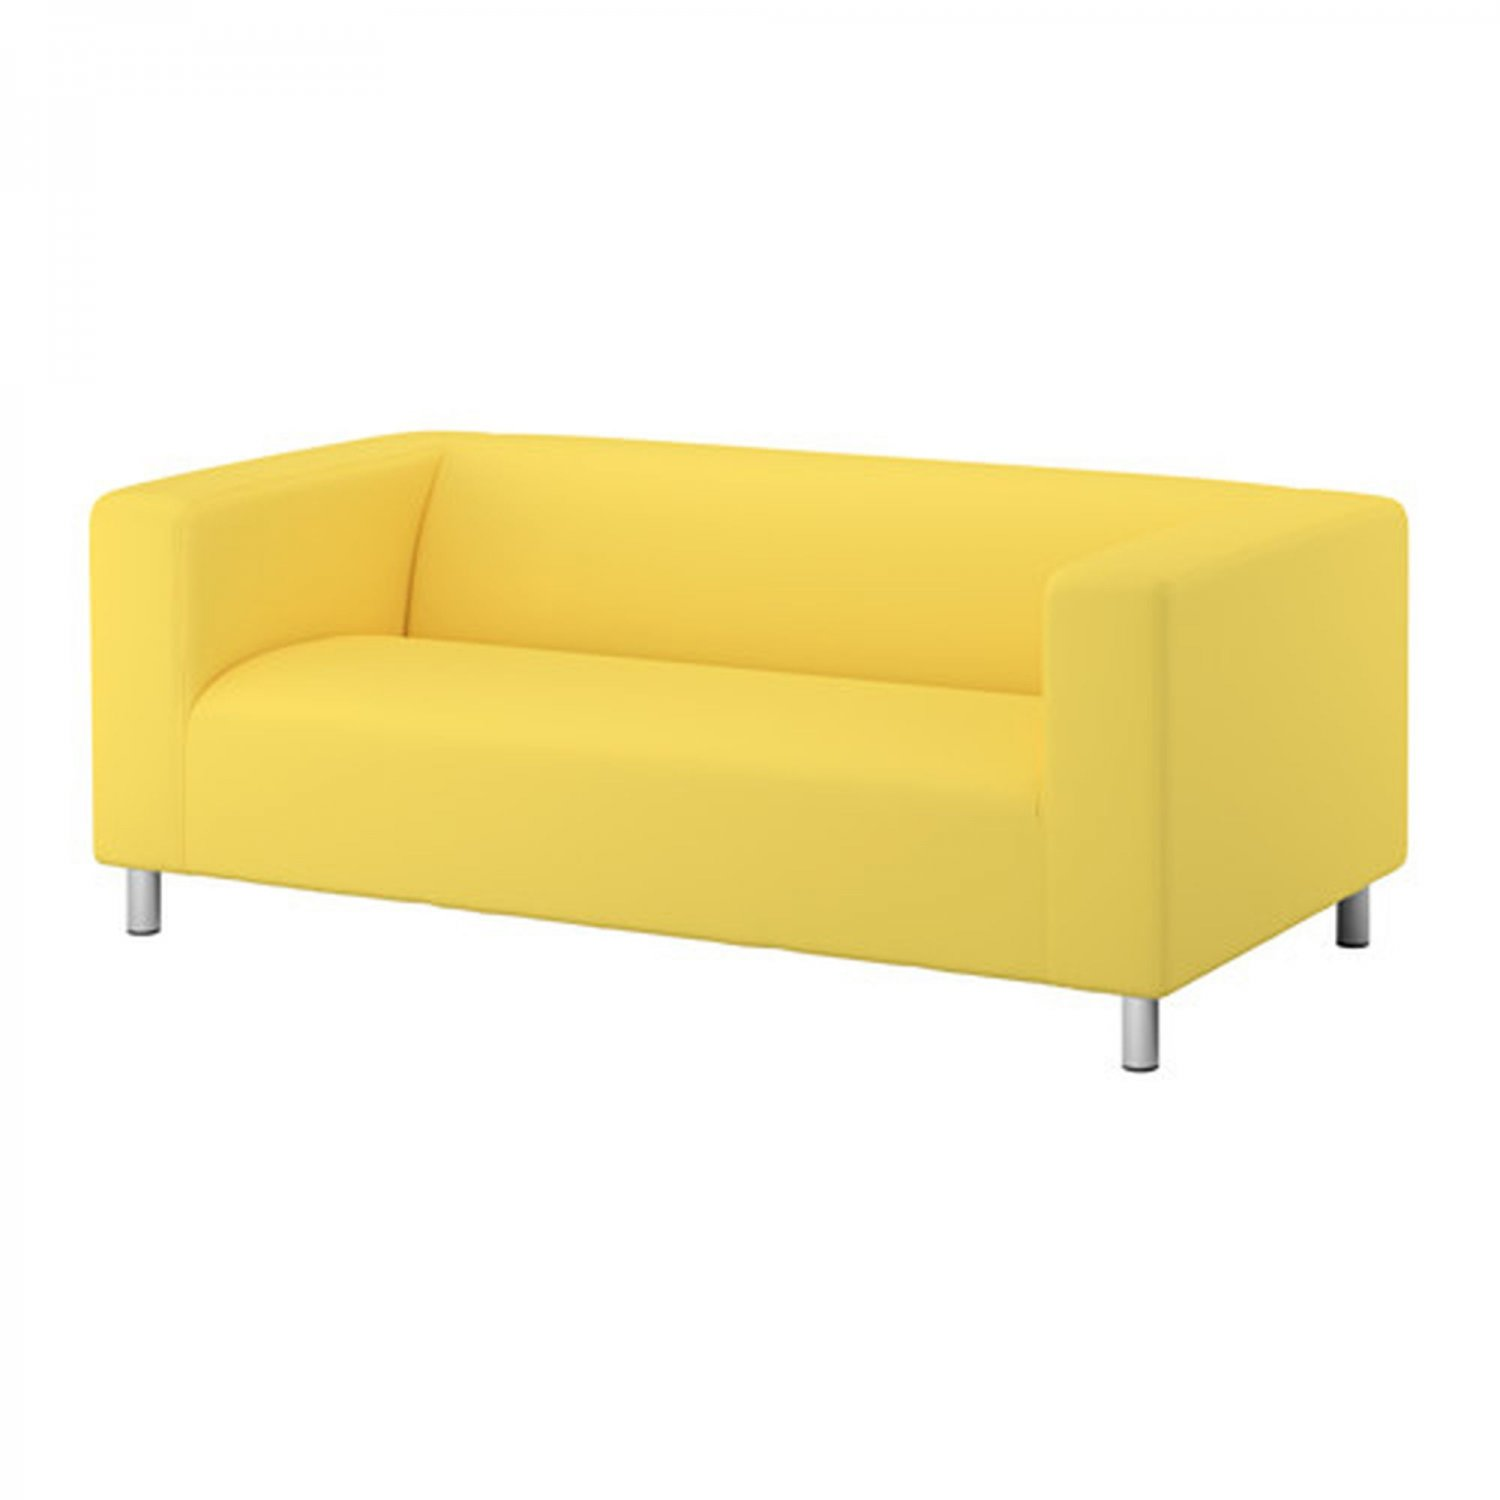 Ikea Bank Accessoires Ikea Klippan Loveseat Sofa Slipcover Cover Vissle Yellow